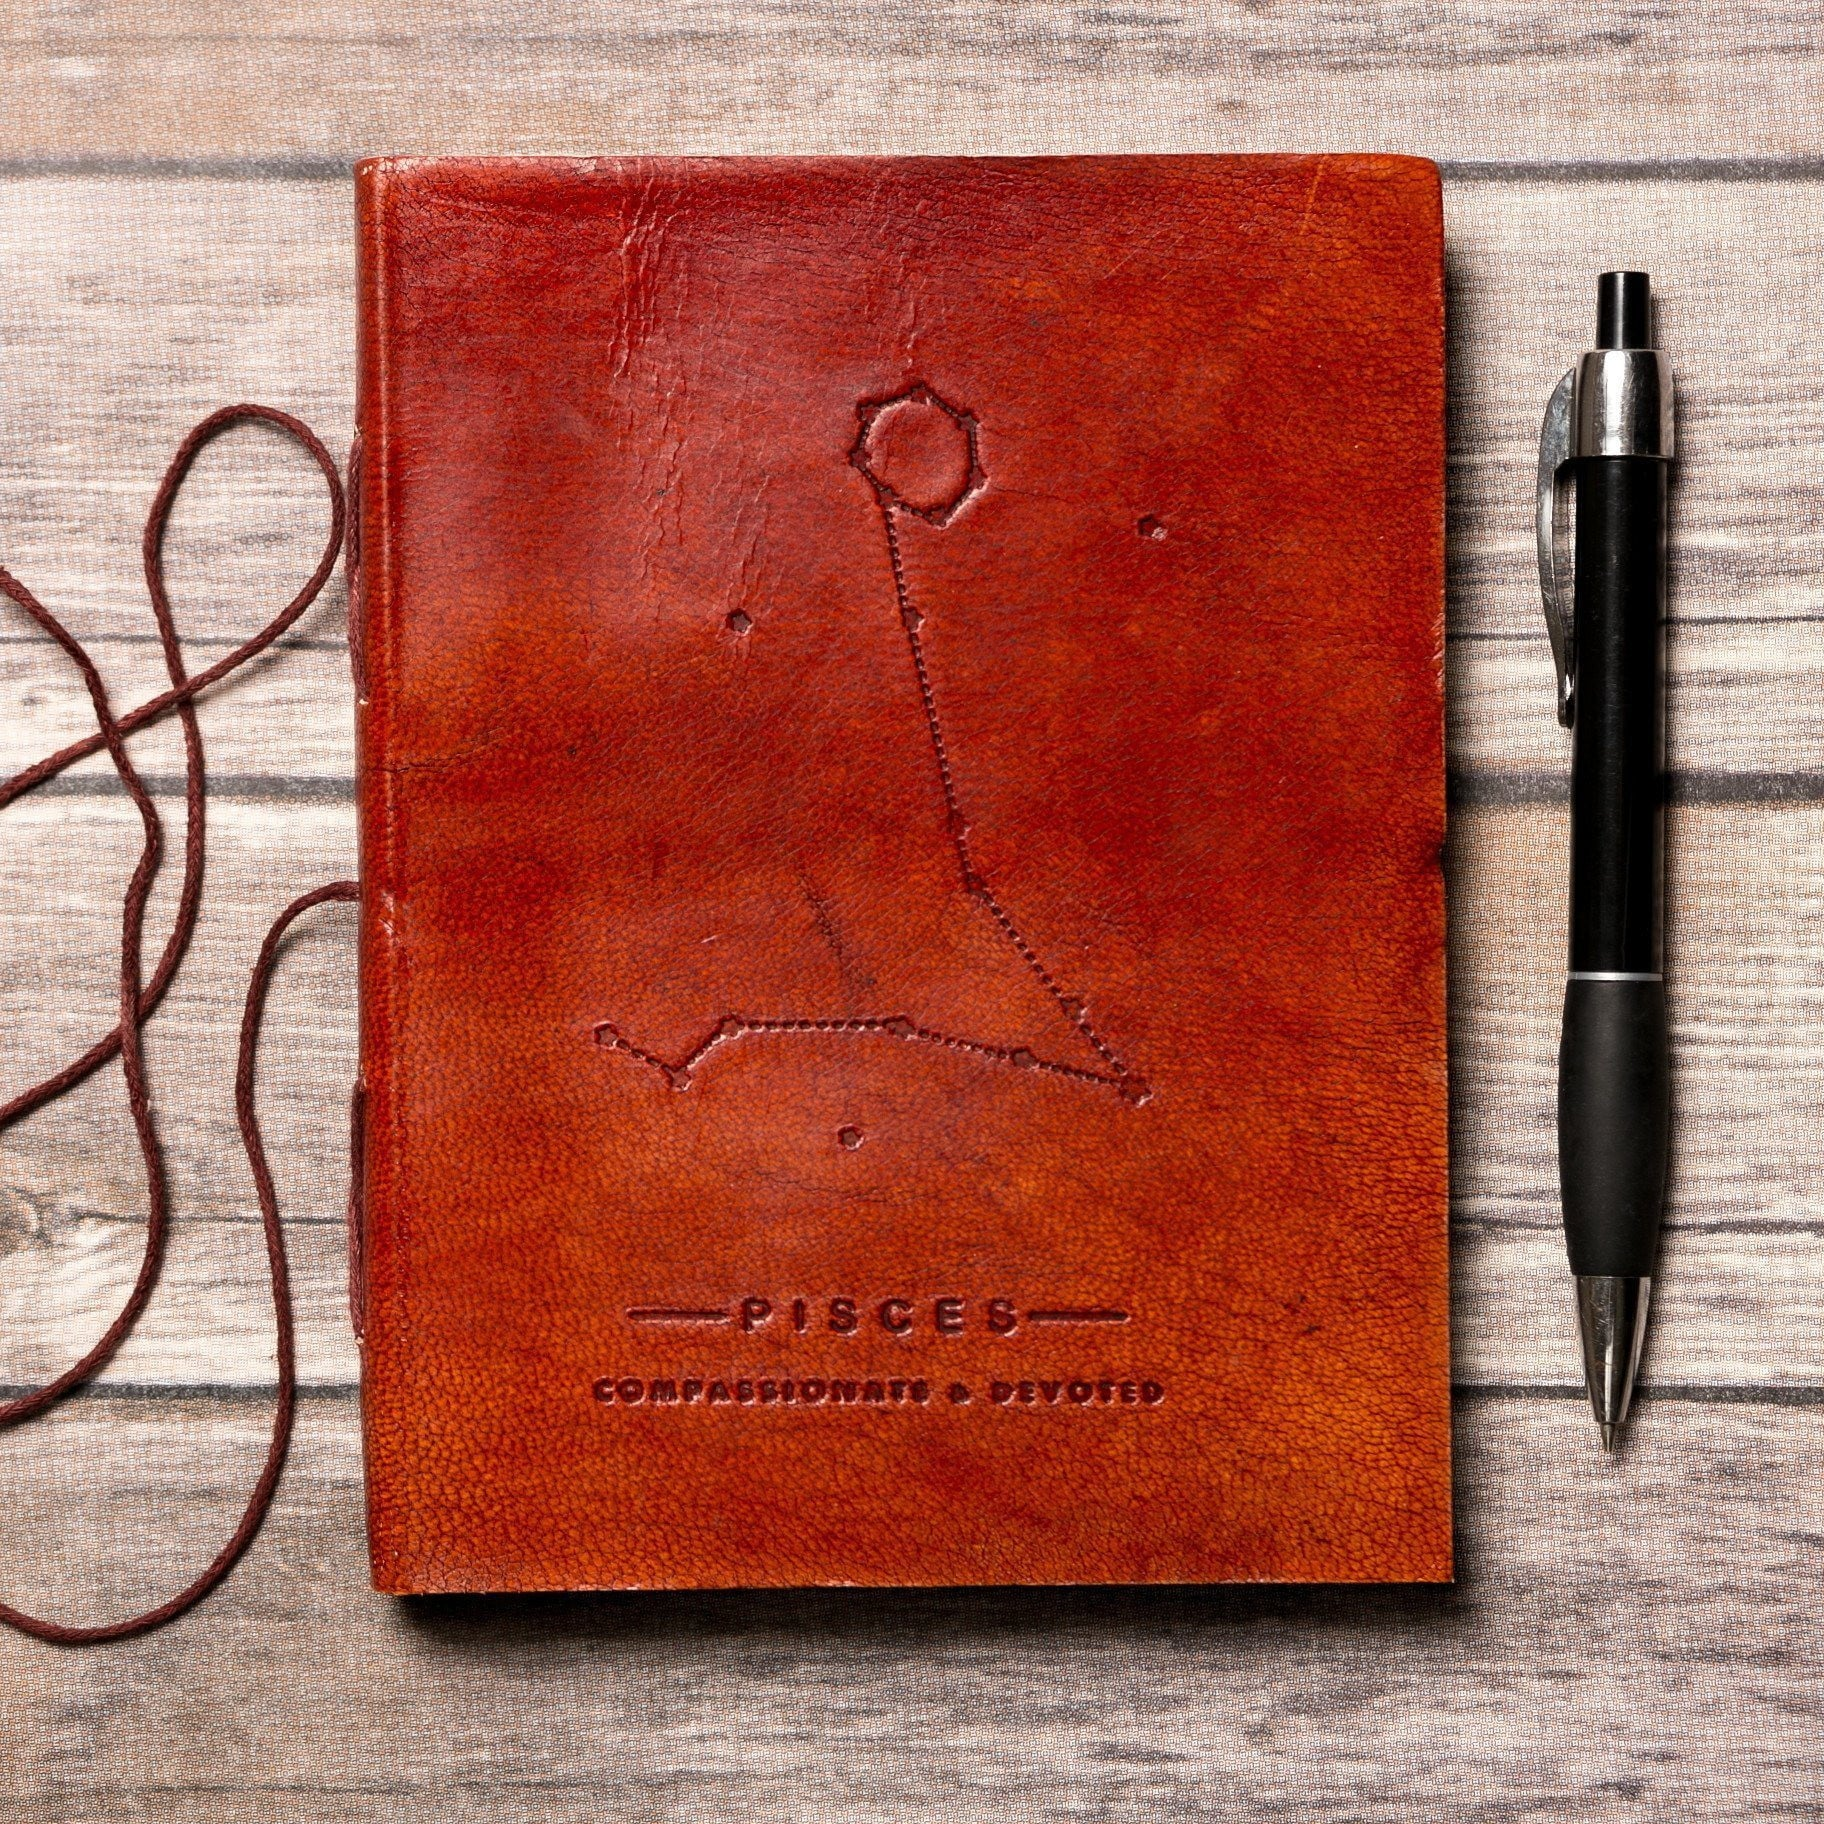 Pisces Zodiac Handmade Leather Journal - Dimension Dream Seekers